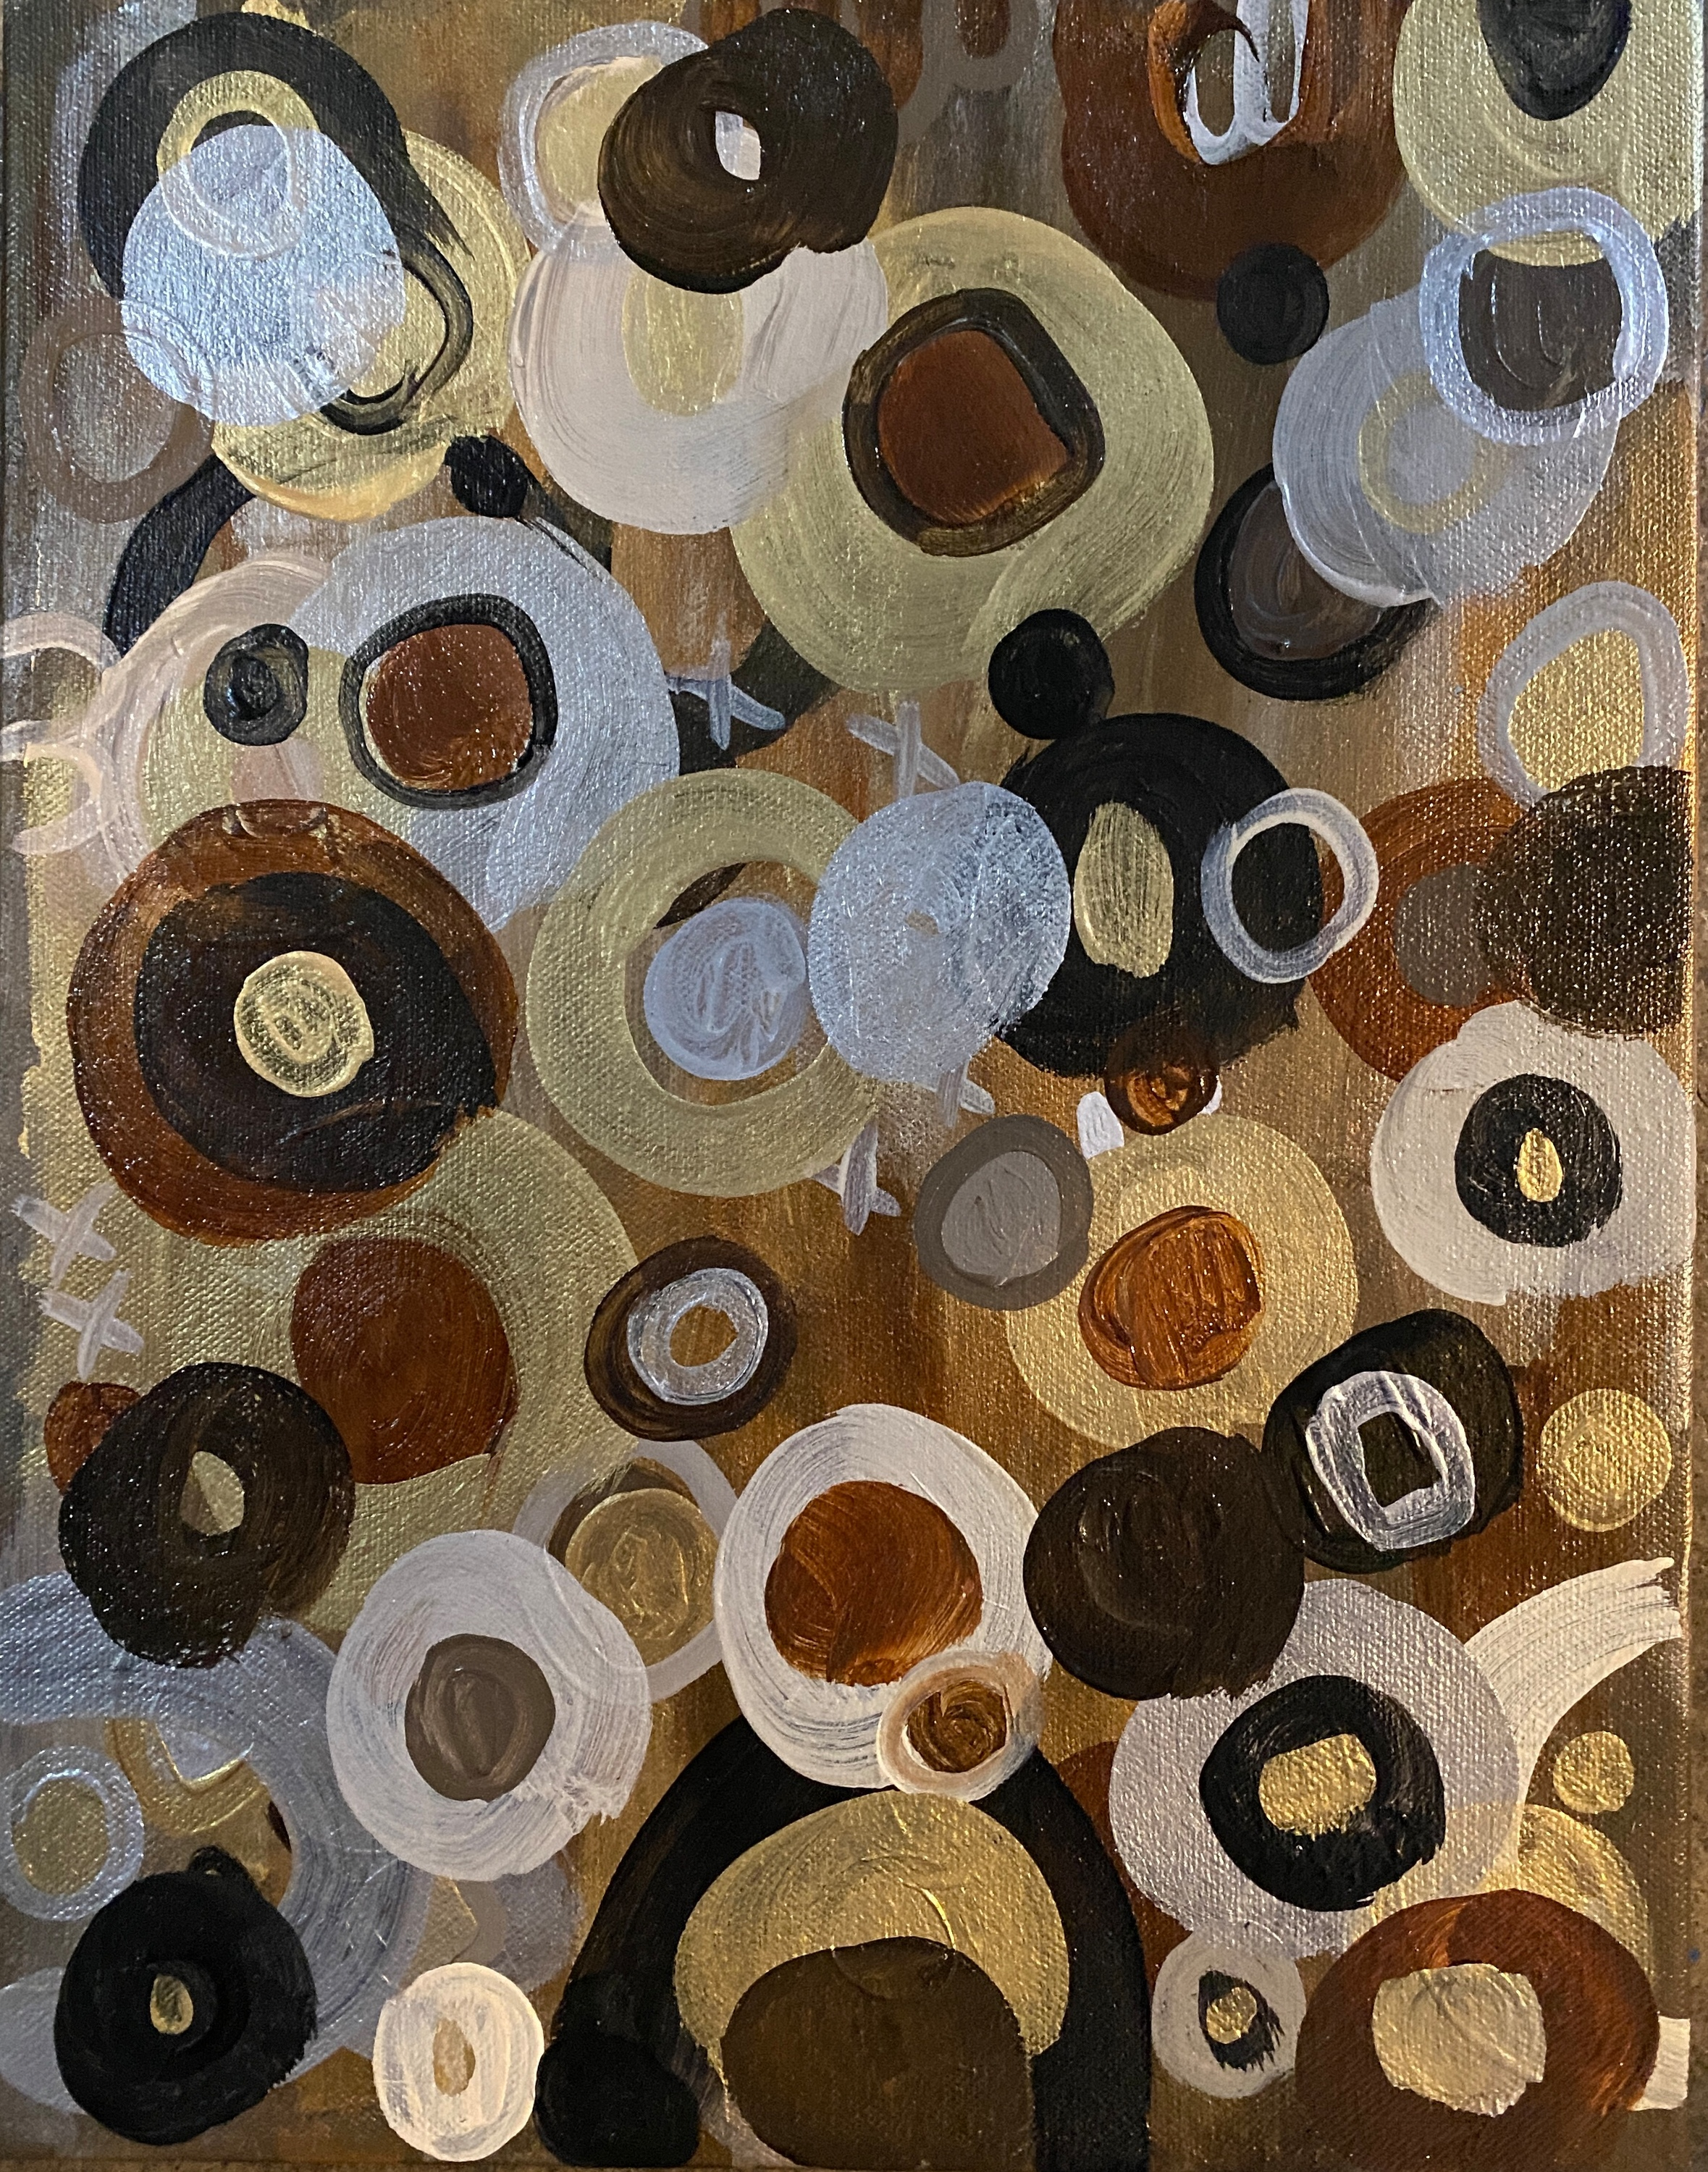 Brenden spivey   black is gold   abstraction gallery lf2pxx